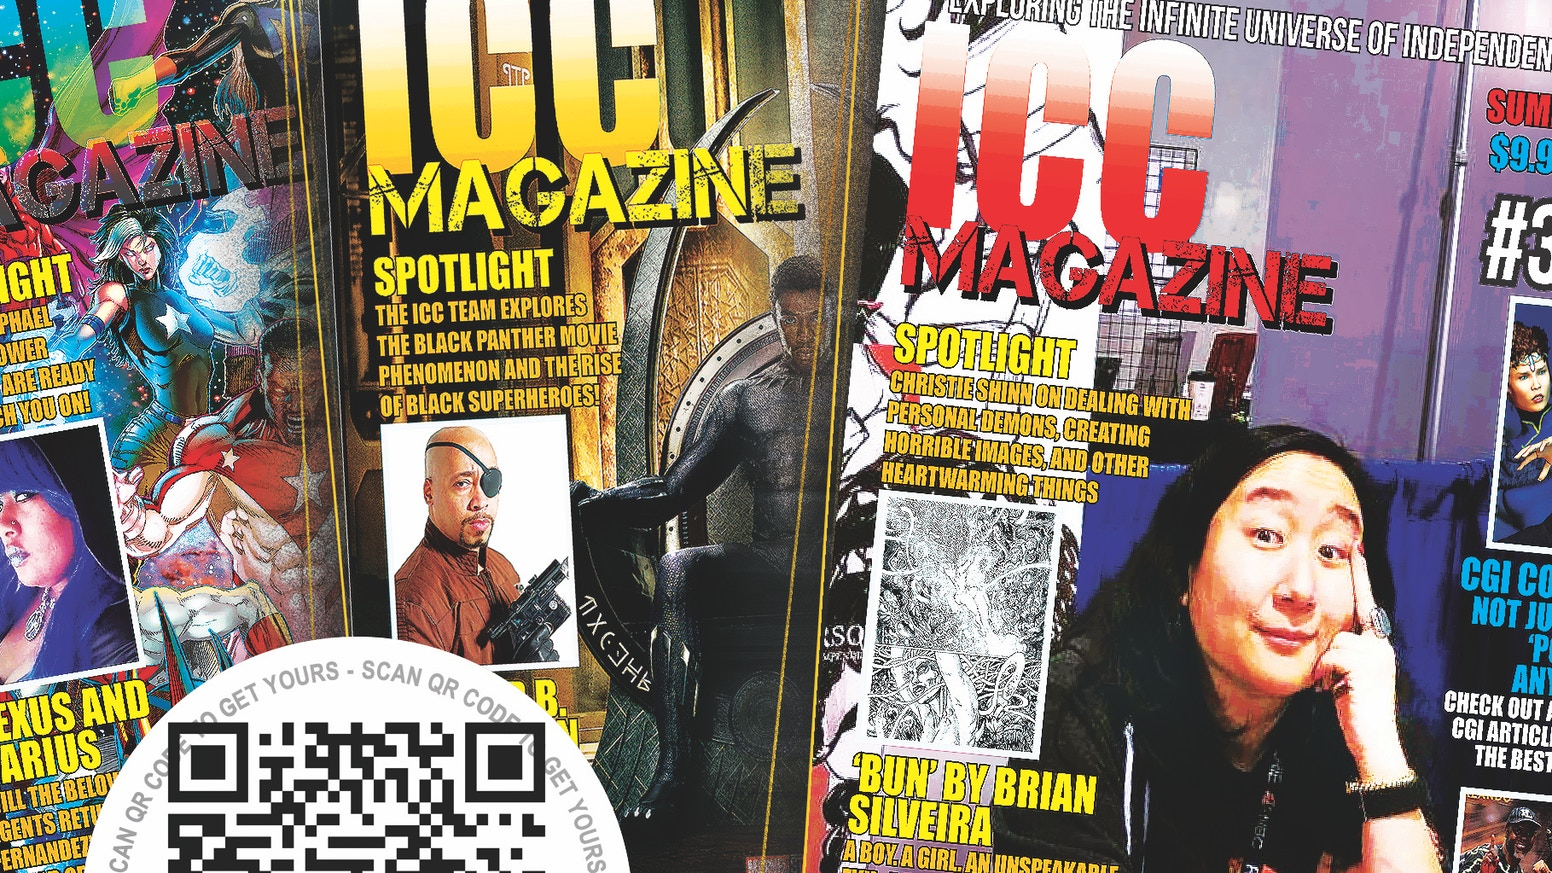 ICC Magazine has been picked up by Diamond Comic Distributors! Indie Comic Artists now have a national voice and yours can join in!